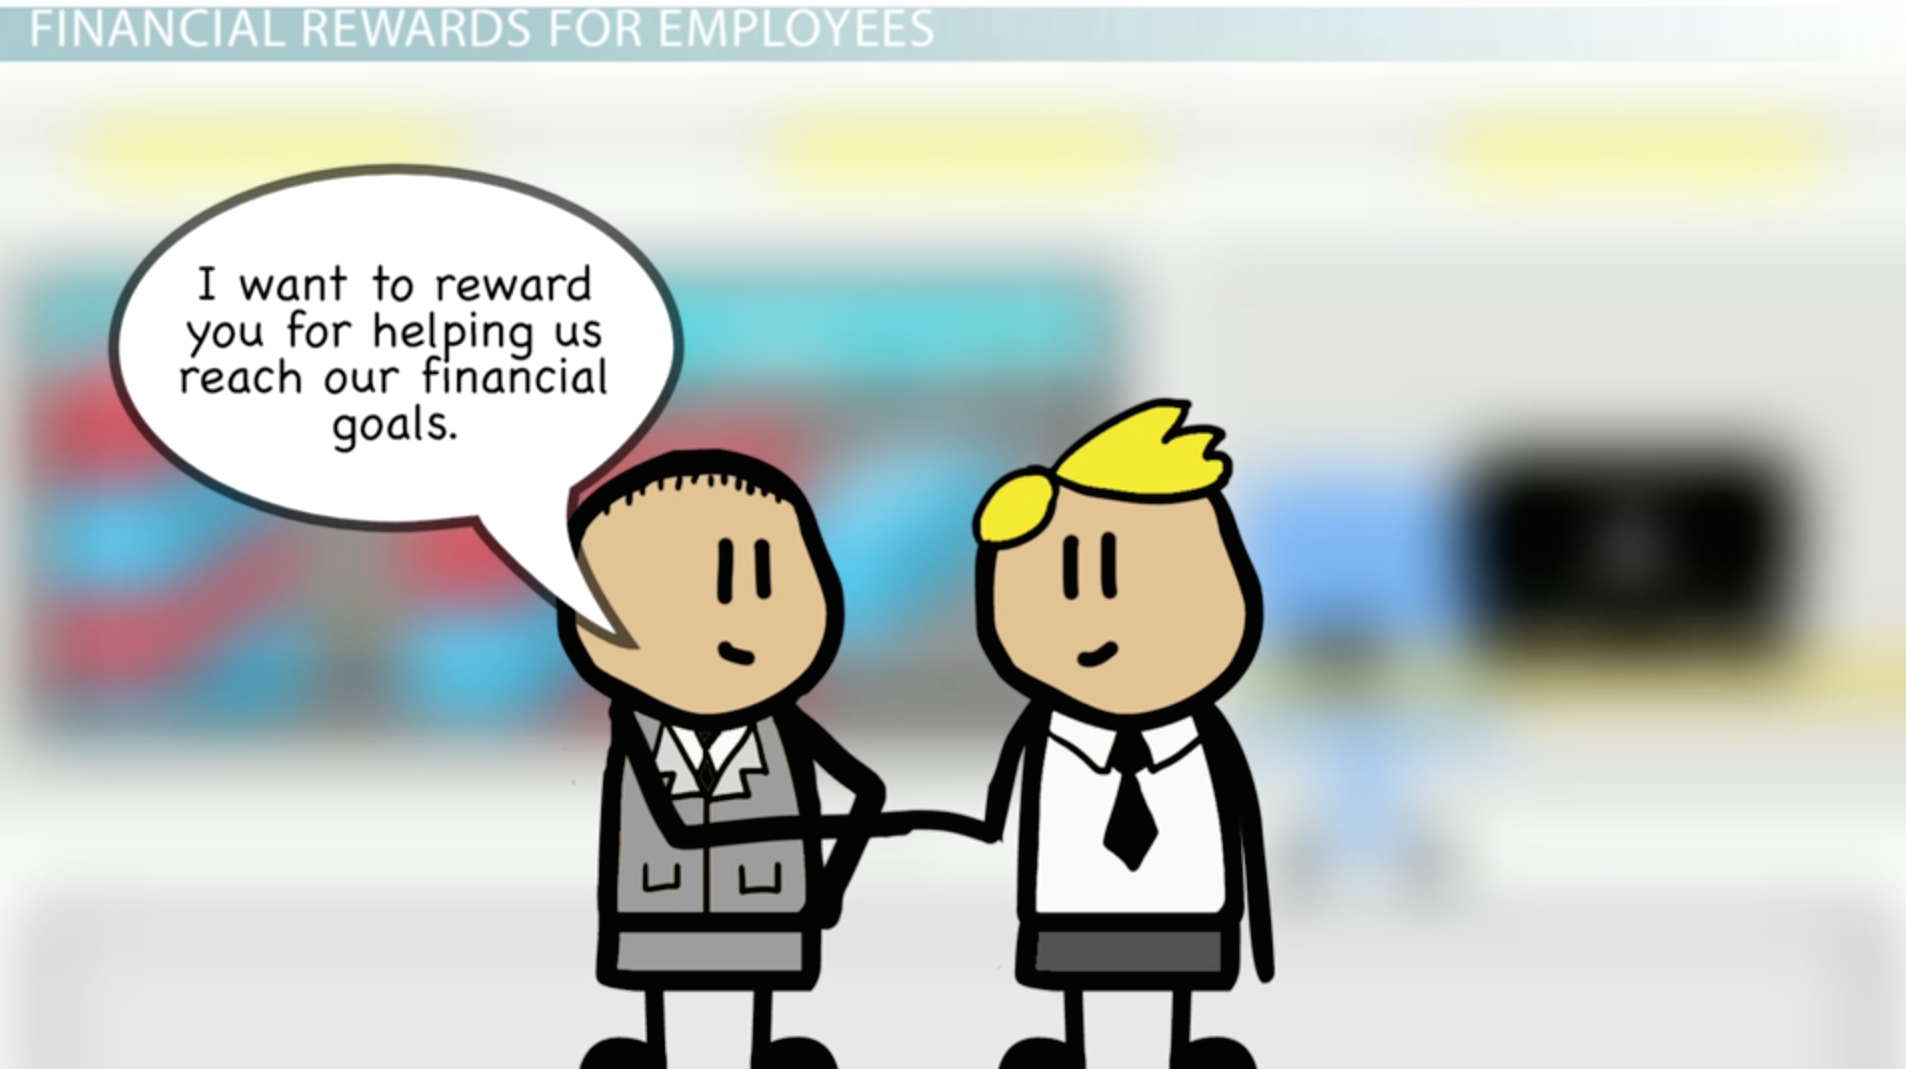 motivating and rewarding employees Money seems to motivate a majority of employees what motivates employees quality of life and rewarding work seem to matter most.